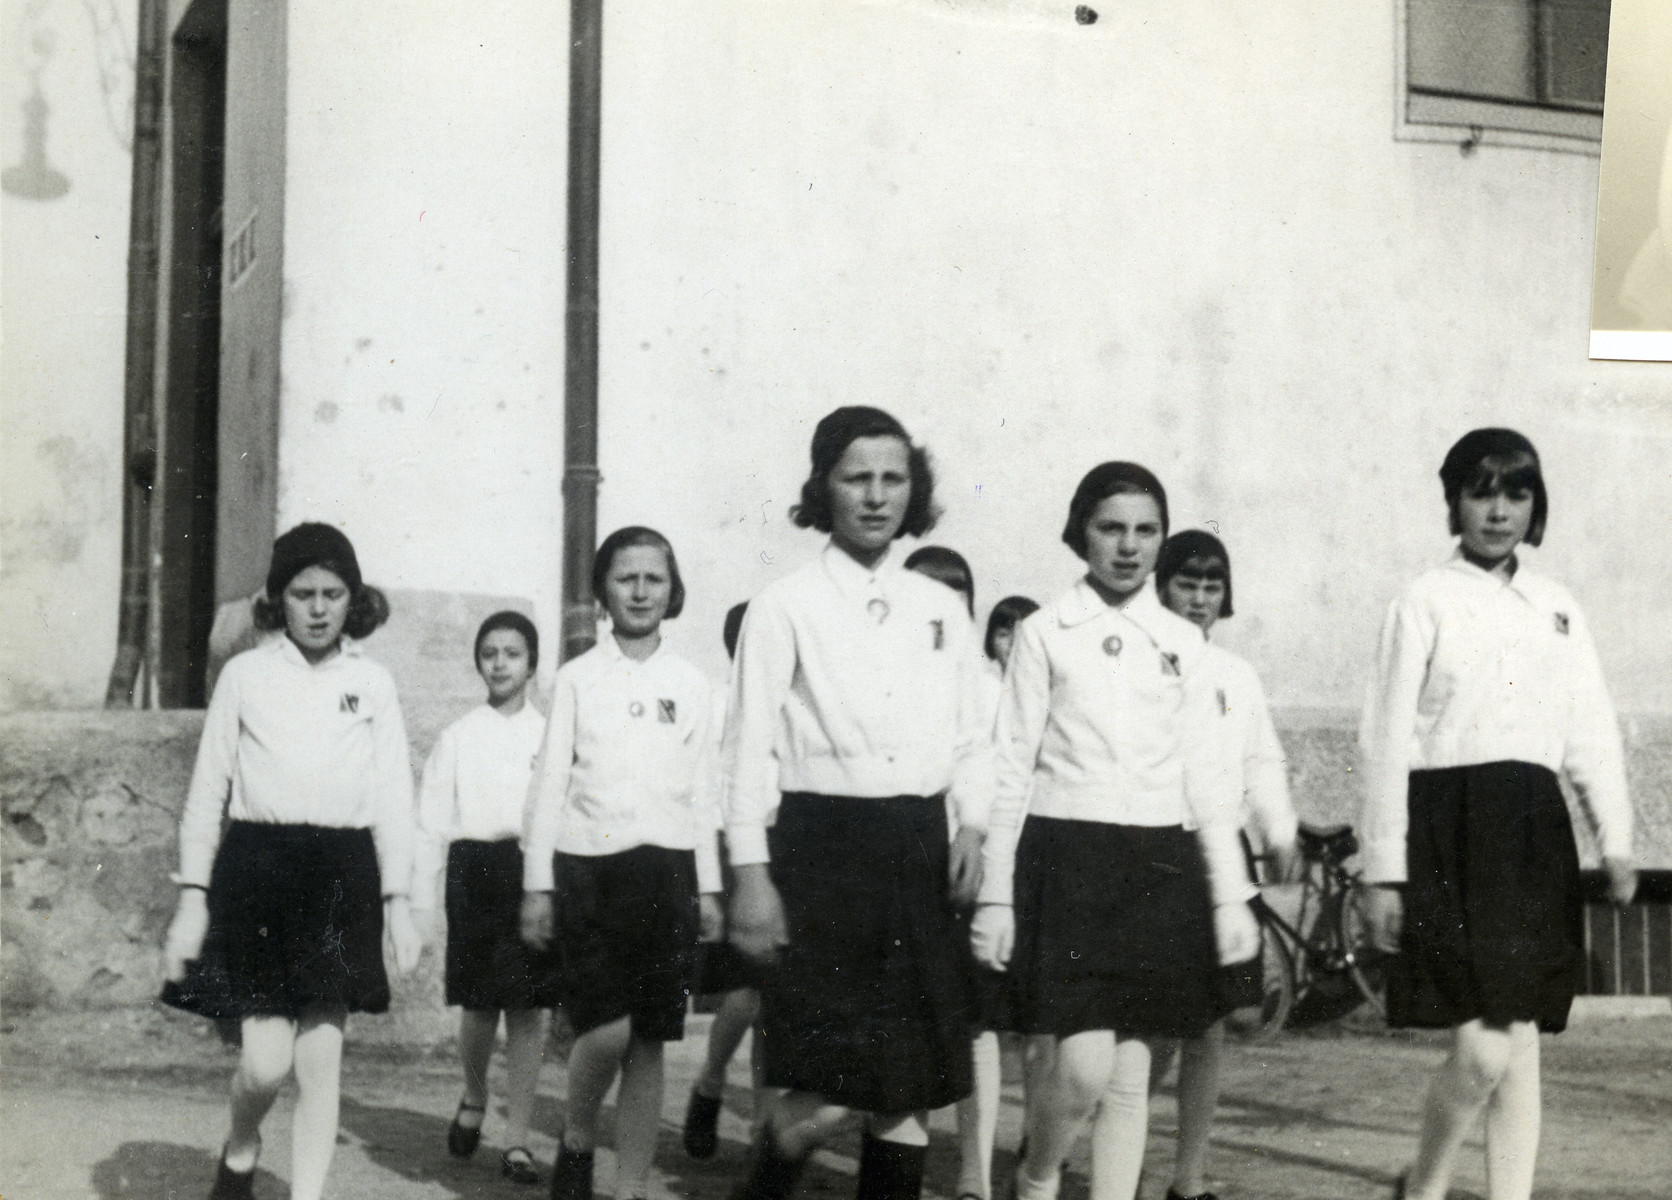 Group portrait of young girls belonging ot the Fascist youth movement Picolo Italiana rallying for Mussolini.   Among those pictured is Anna Kohn. Membership in the organization was obligatory at that time; even for Jews.